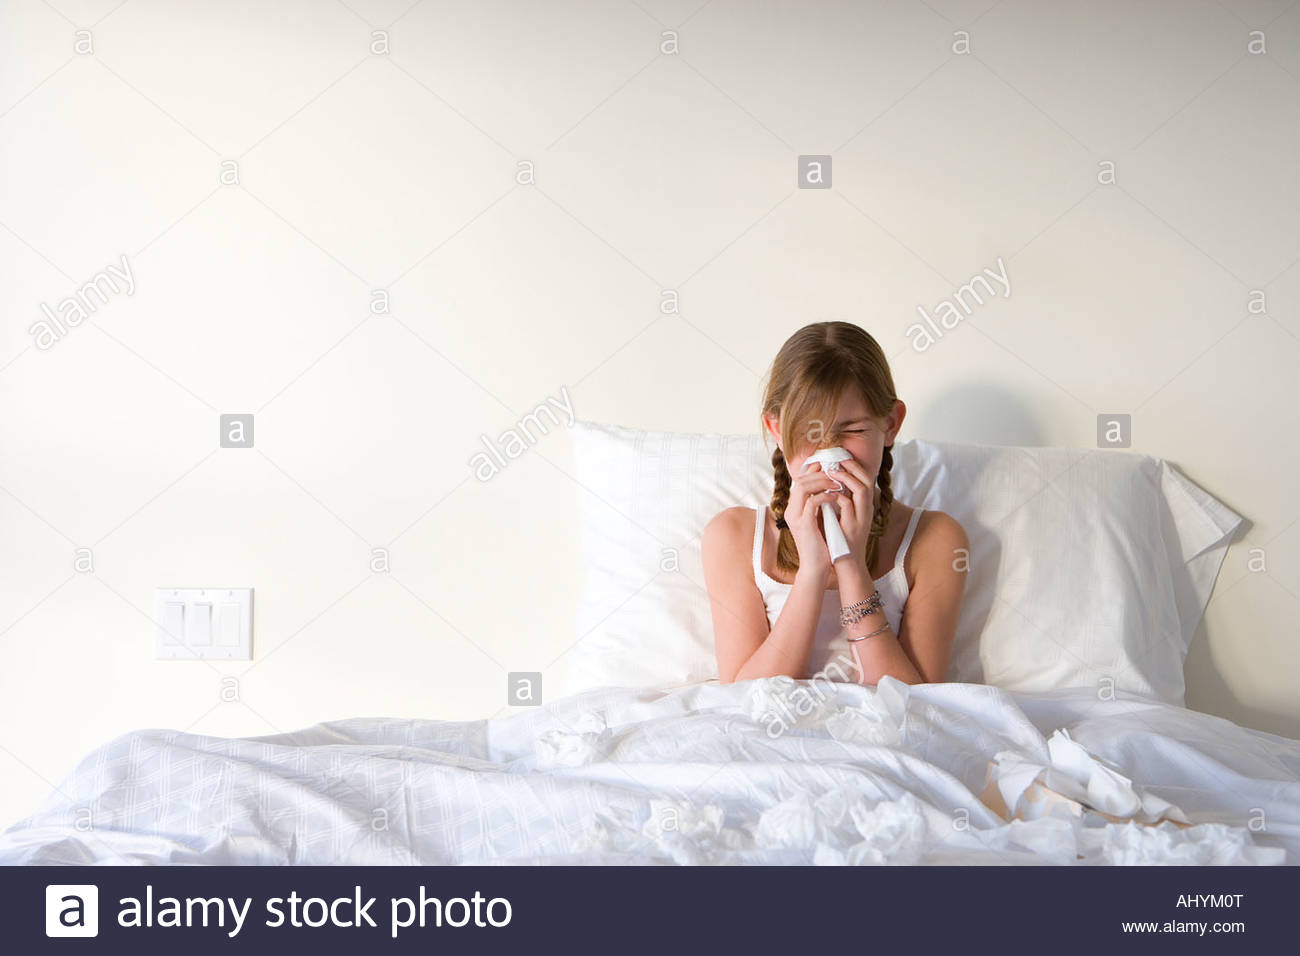 Girl  sitting upright in bed, blowing nose with handkerchief, front view - Stock Image